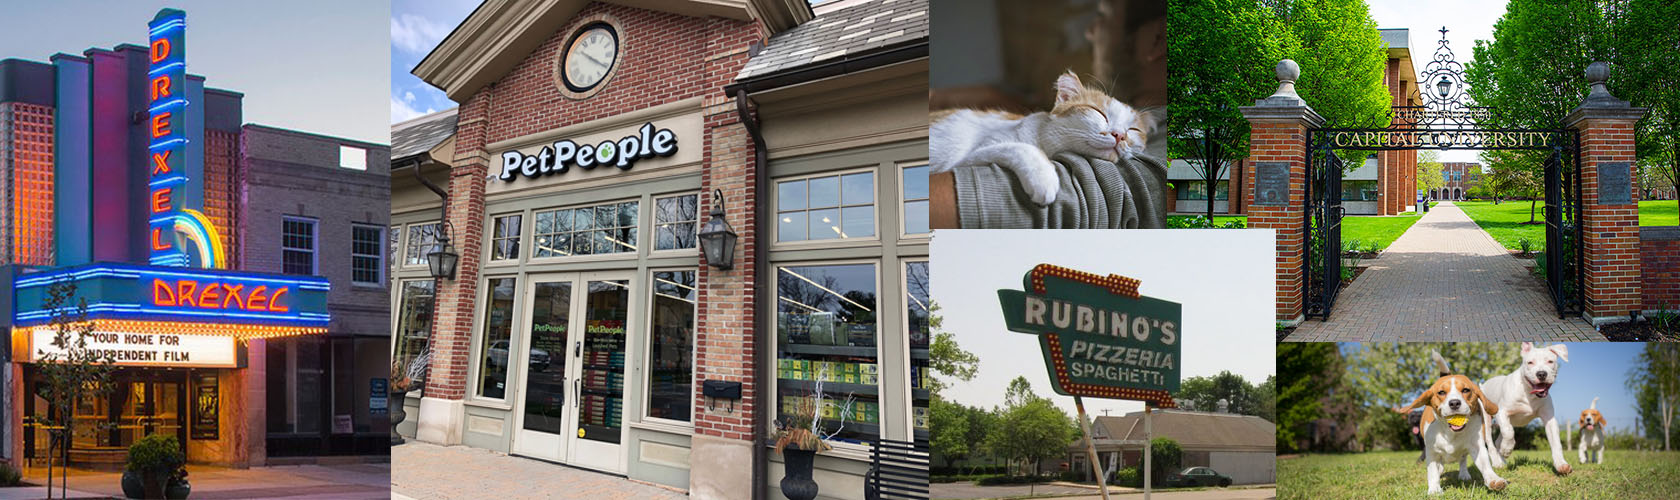 Pet People store collage in Bexely